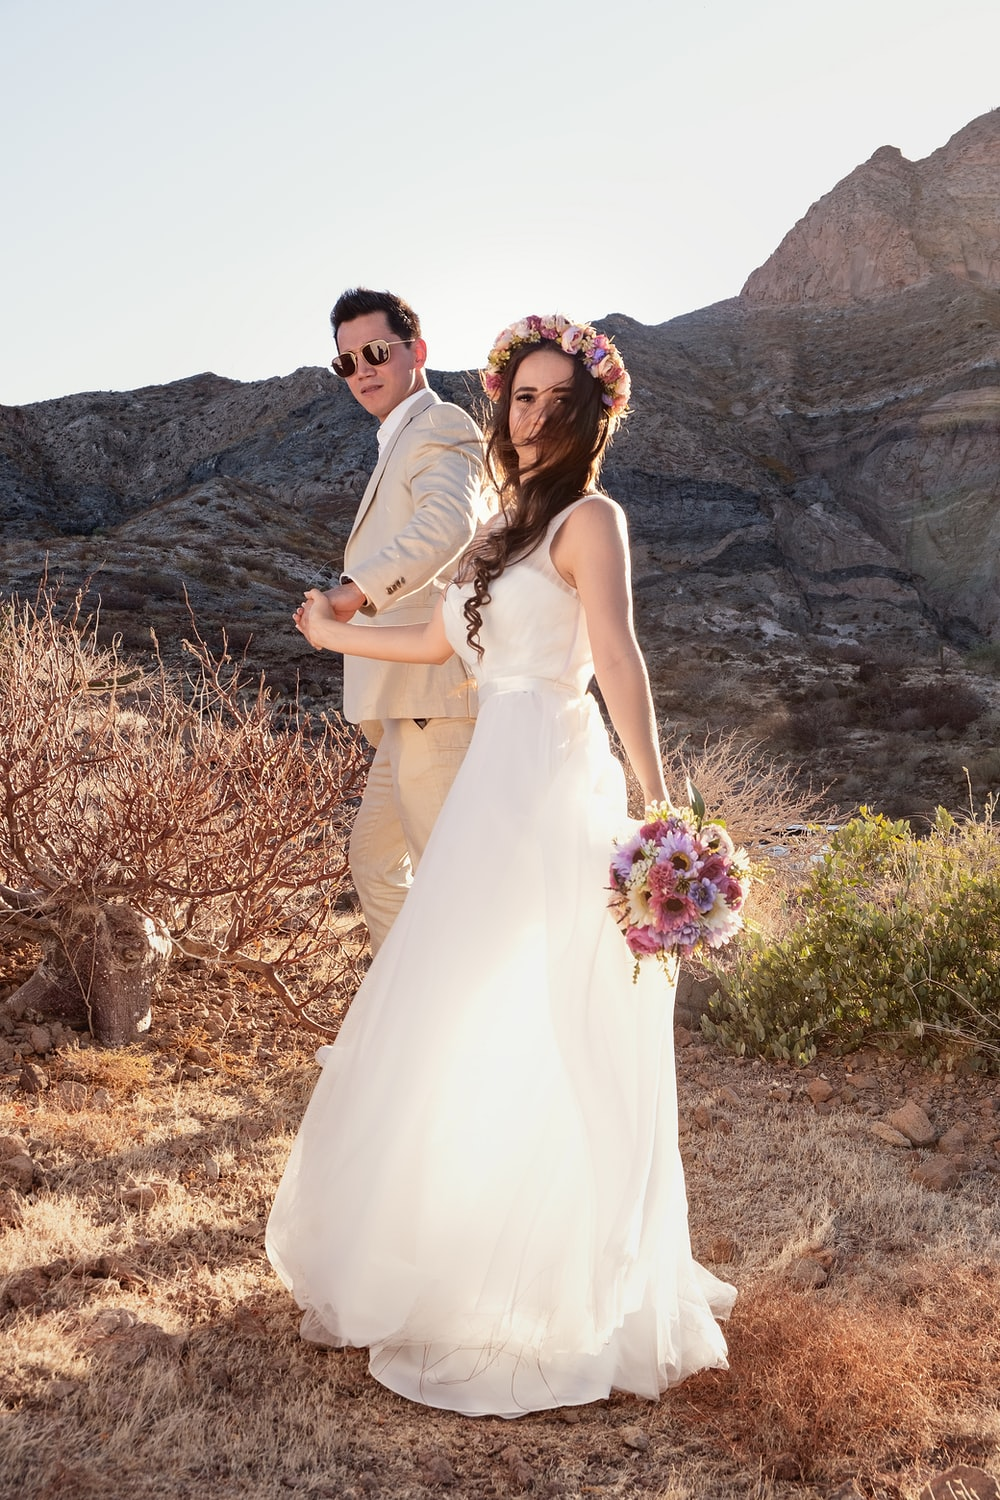 Wedding Photography Pictures Download Free Images On Unsplash